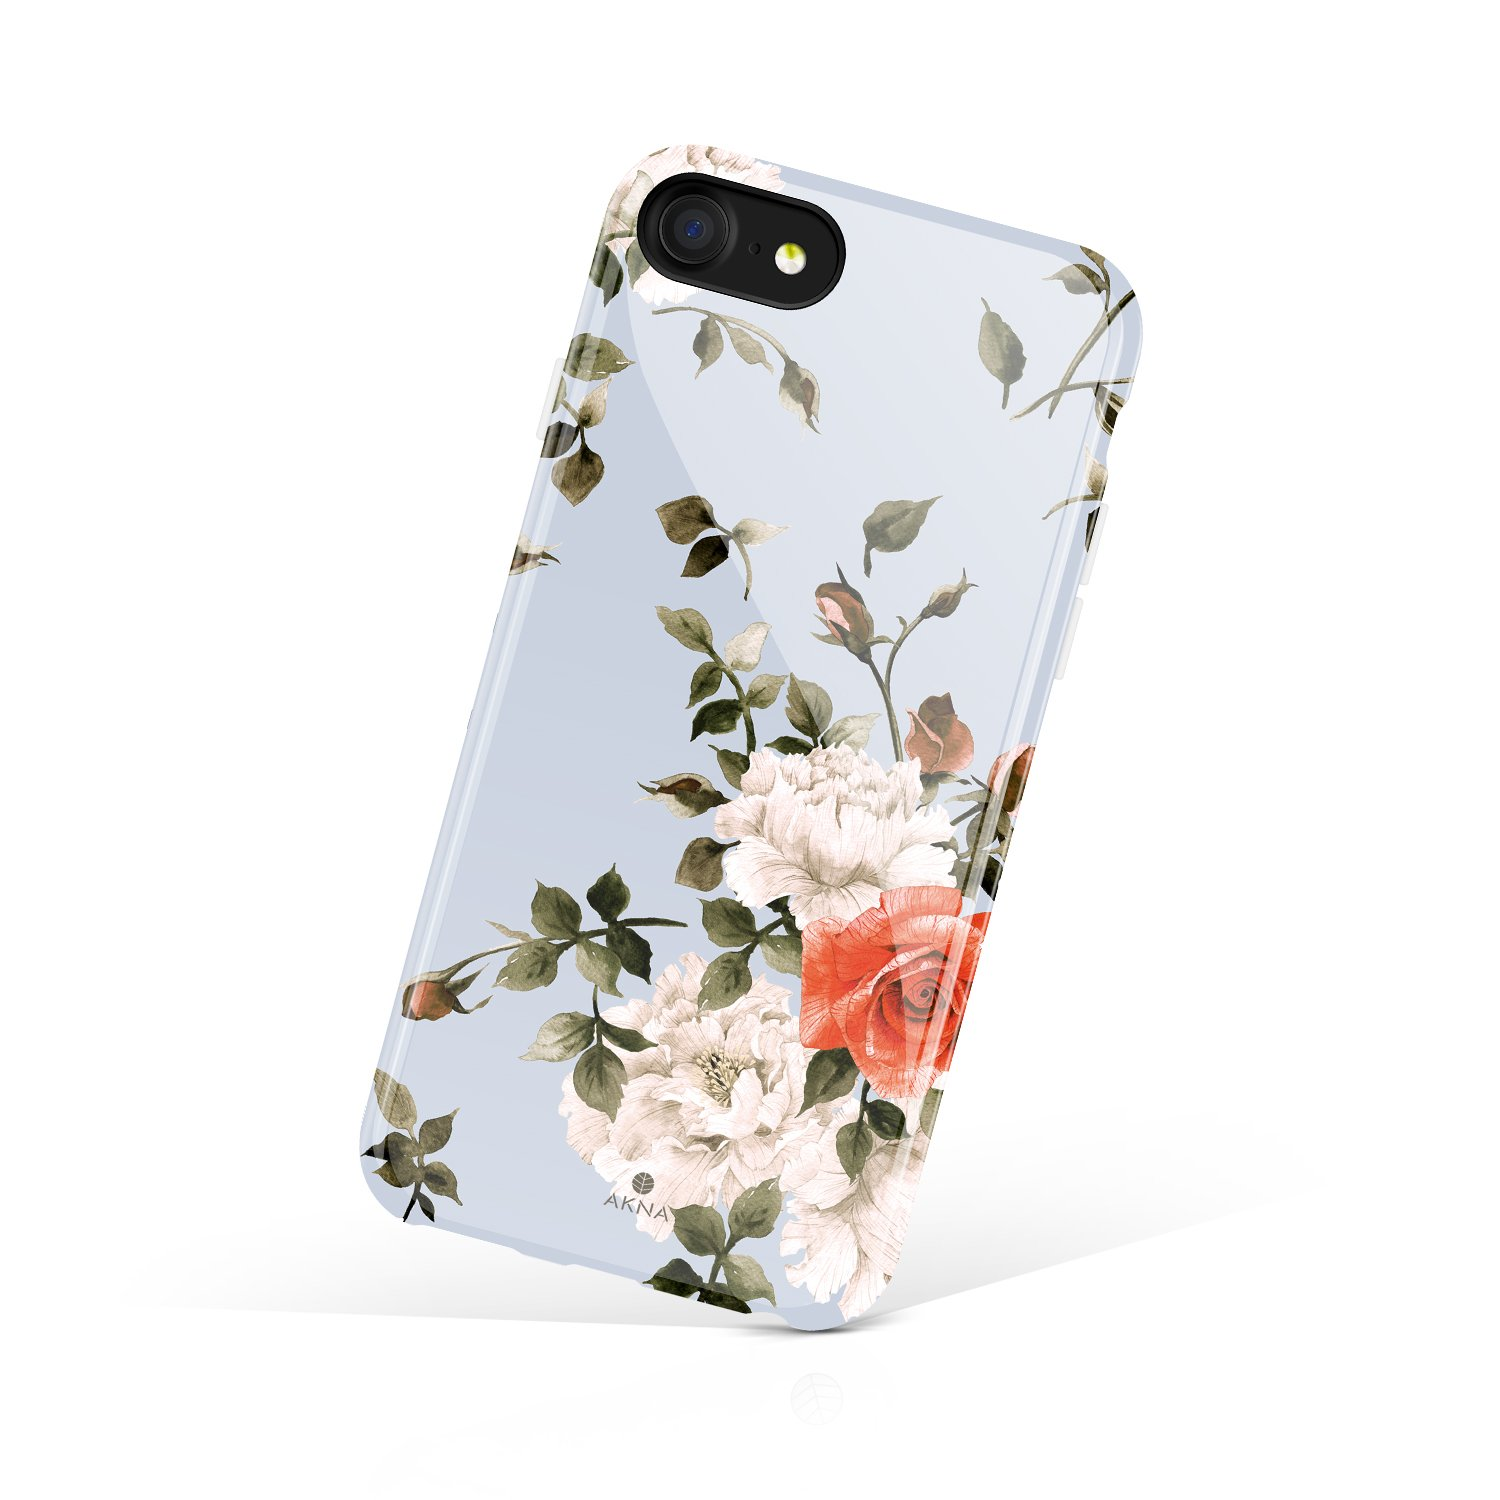 I Phone 8 & I Phone 7 Case Floral, Akna Collection Flexible Silicon Cover For Both I Phone 8 & I Phone 7 [Cashmere Blue Floral](776 U.S) by Akna